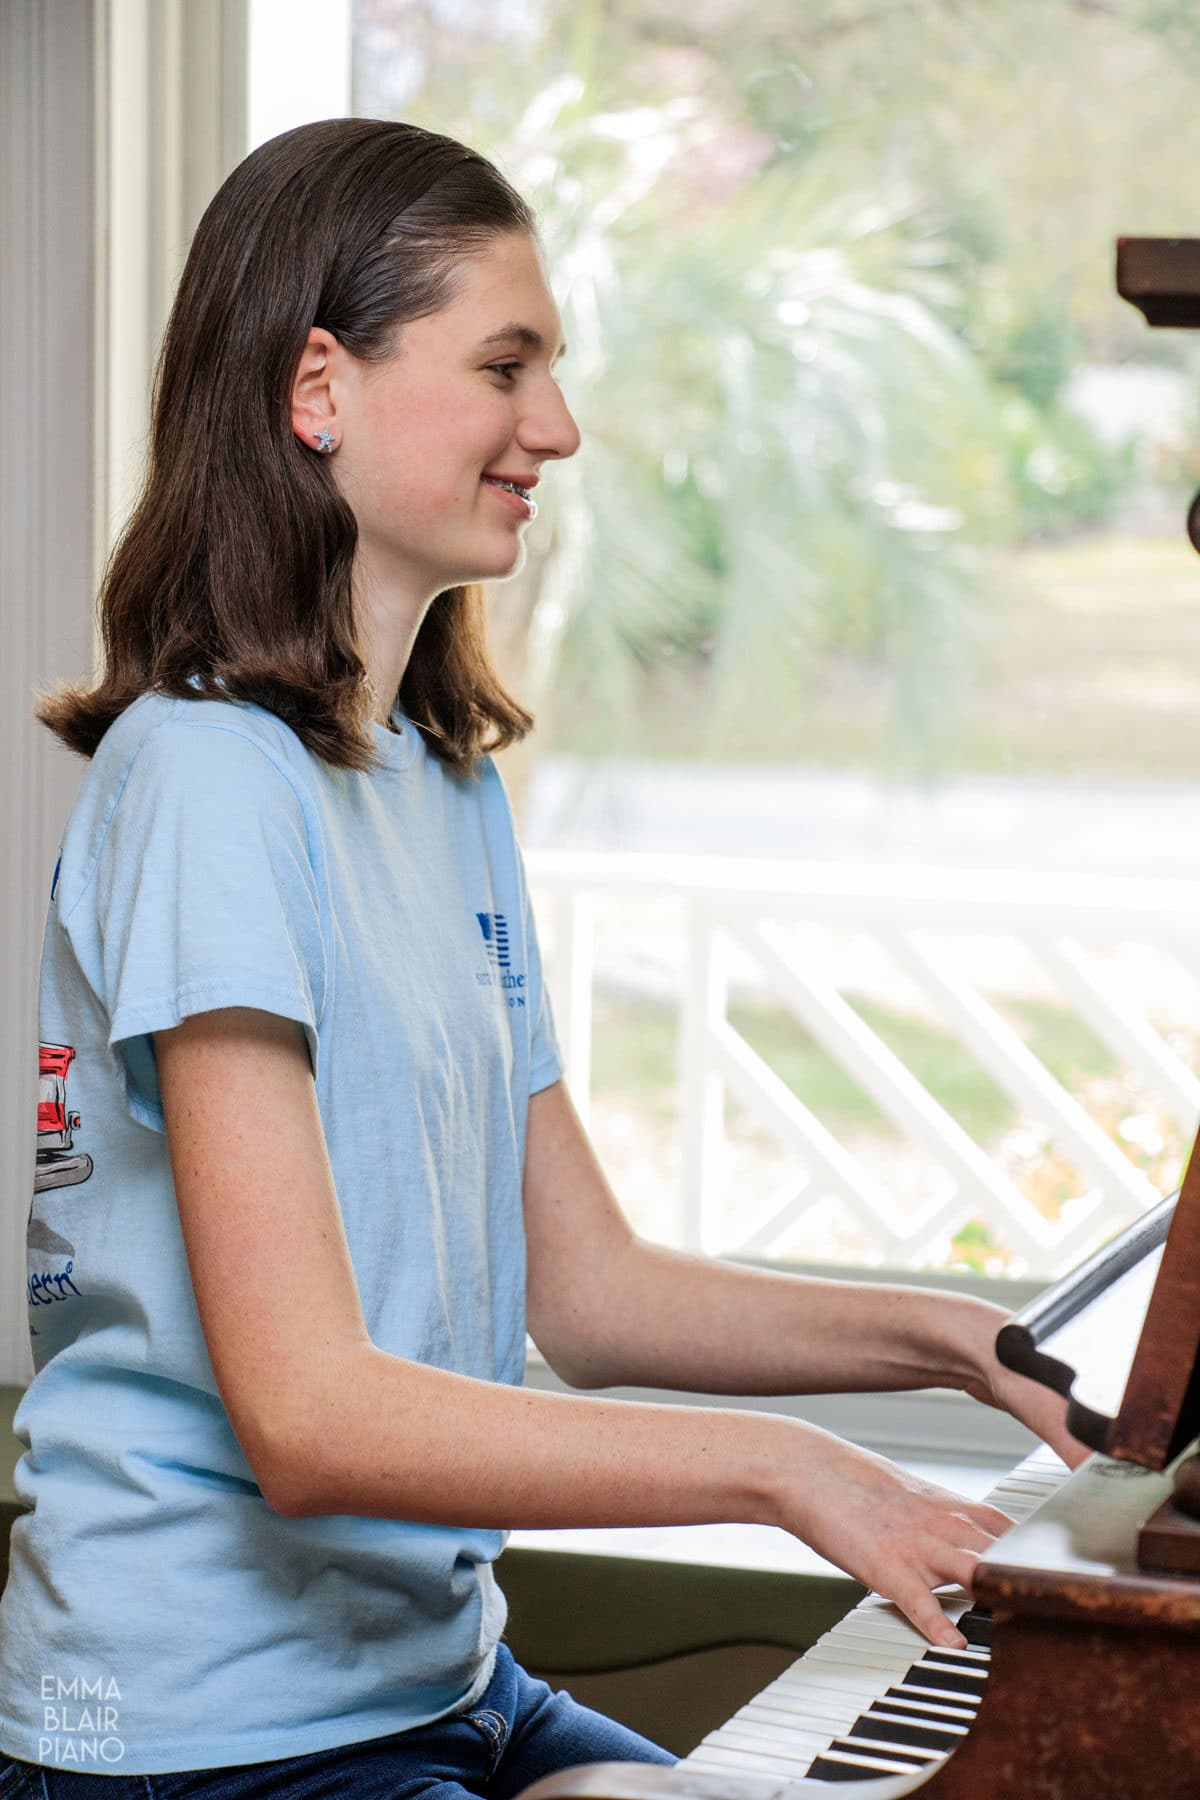 teenage girl playing the piano with a smile and confidence